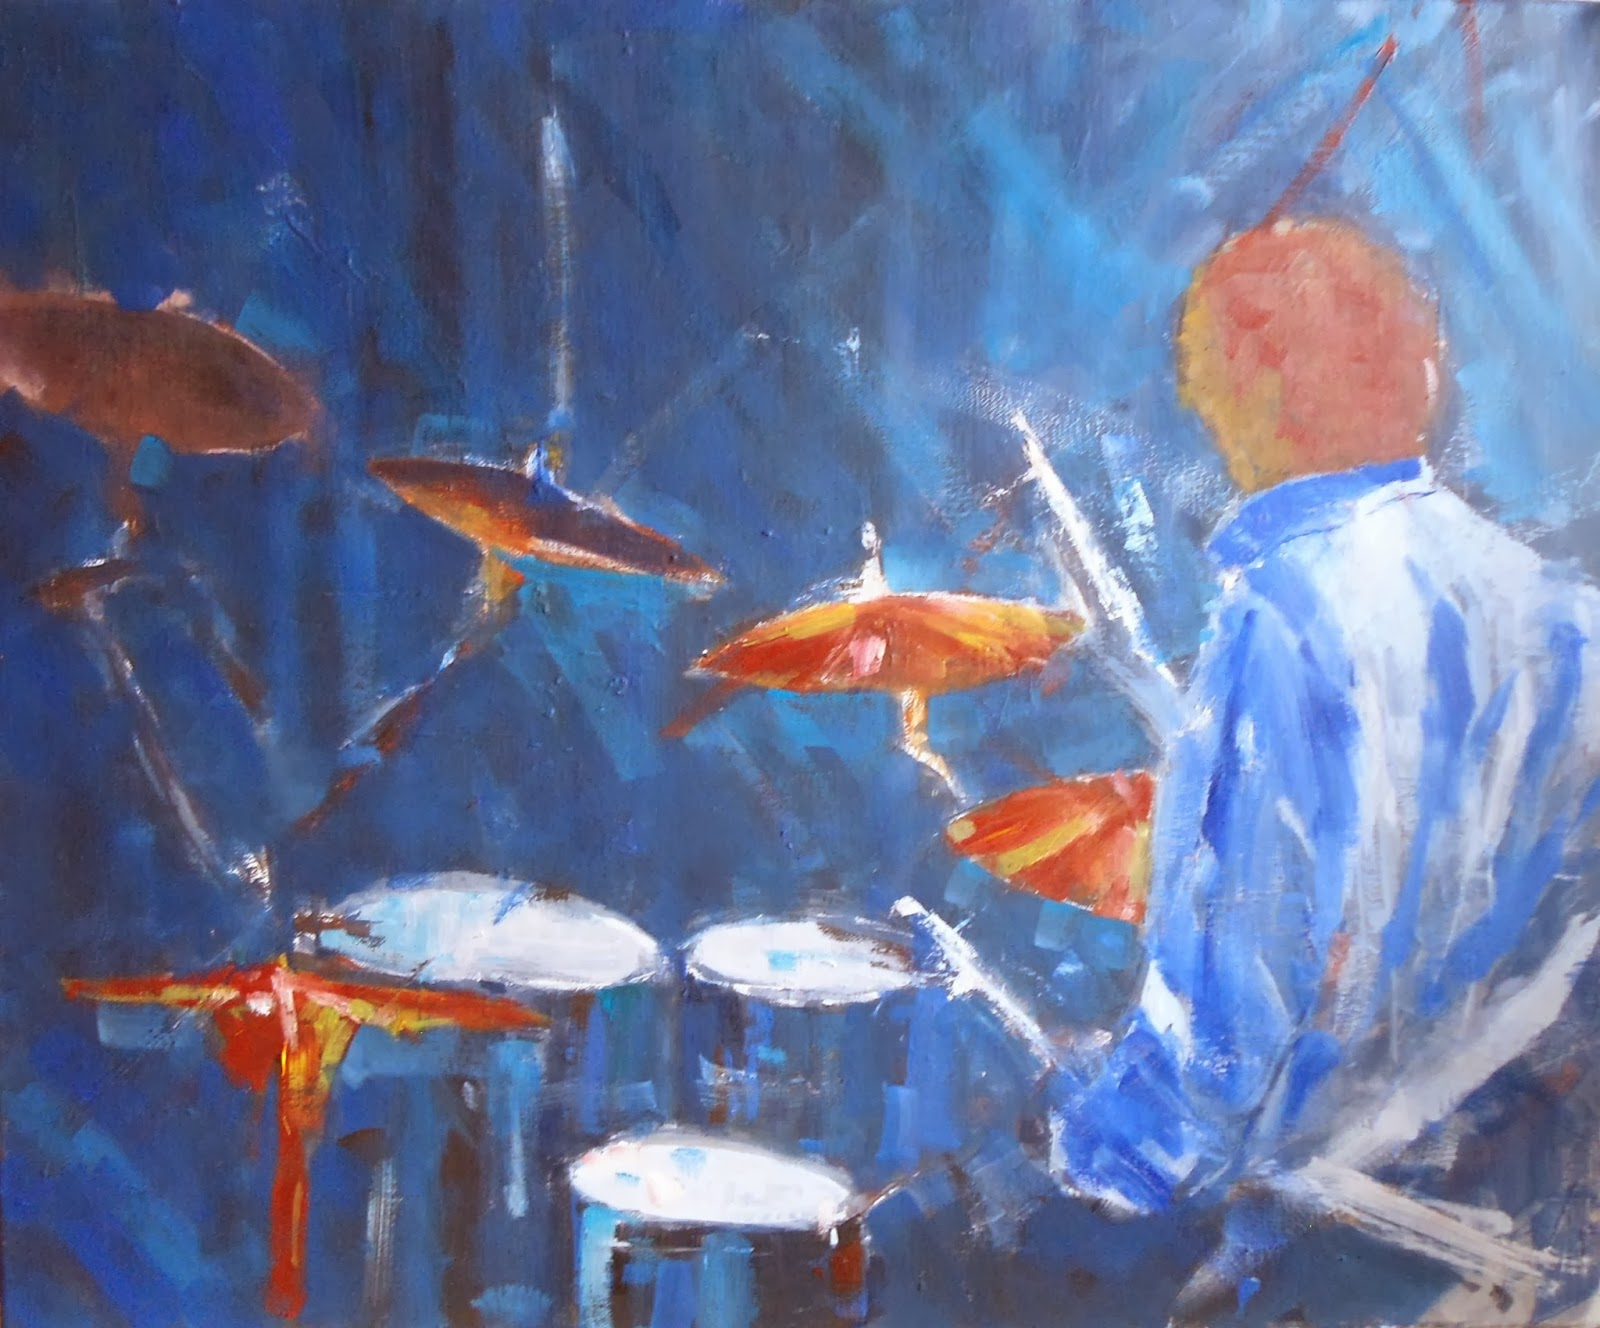 dire straits painting,dire straits,oil on canvas